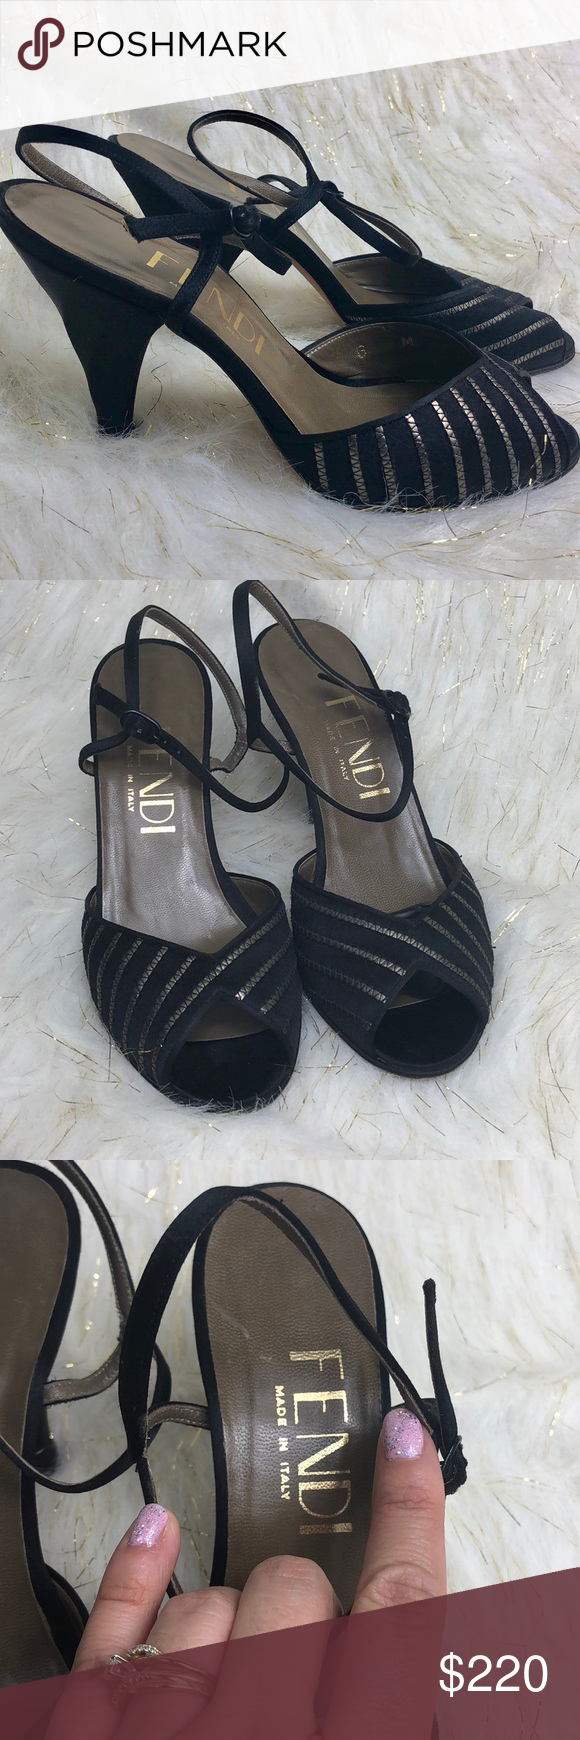 b5a92ff6bc33 Spotted while shopping on Poshmark  FENDI Vintage ankle strap heels!   poshmark  fashion  shopping  style  Fendi  Shoes